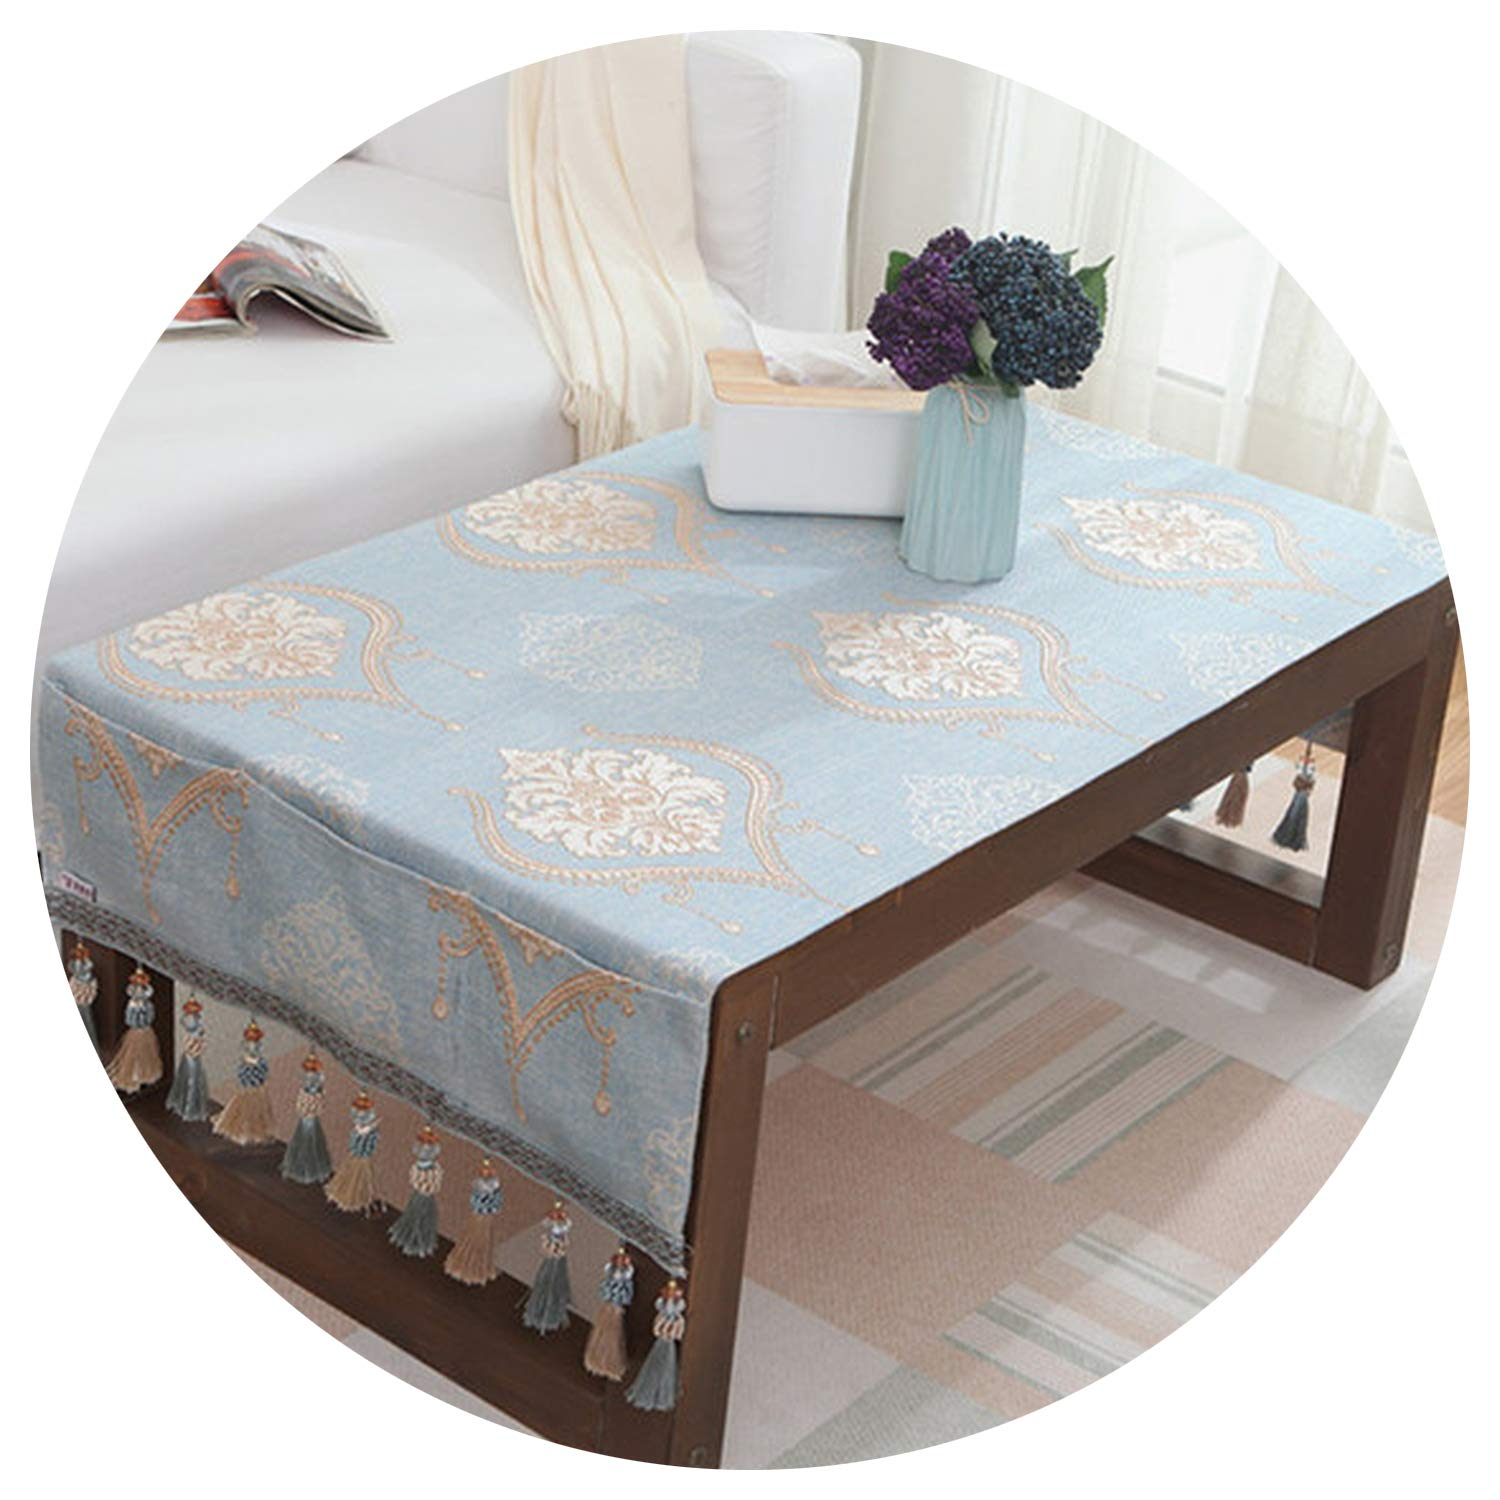 Tablecloths Table Cloth Jacquard Toalha De Mesa Small Tablecloth Pocket Design Hanging Dining Bedside Cabinets Table Covers,Style 2,50X160Cm